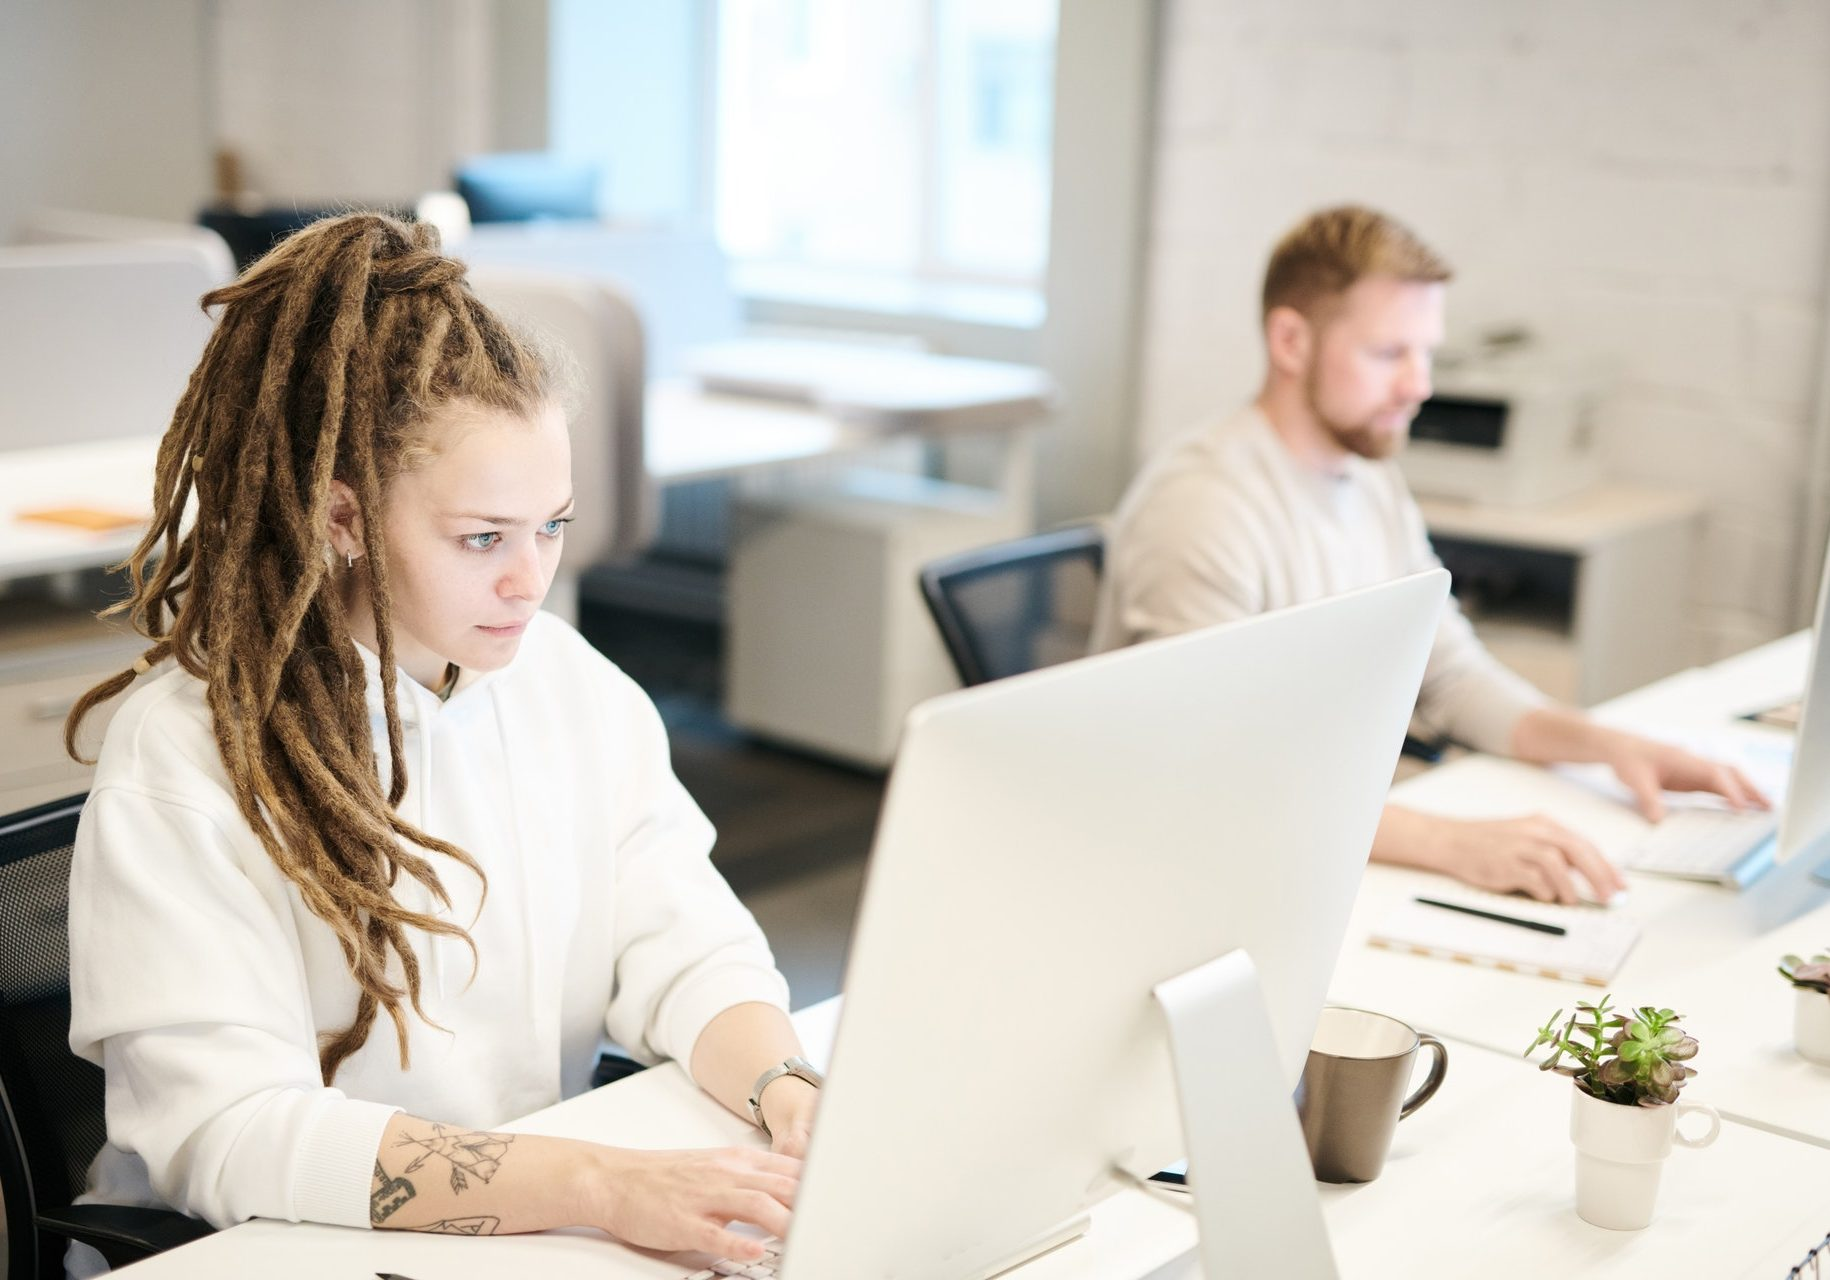 working-in-front-of-the-computer-3184355